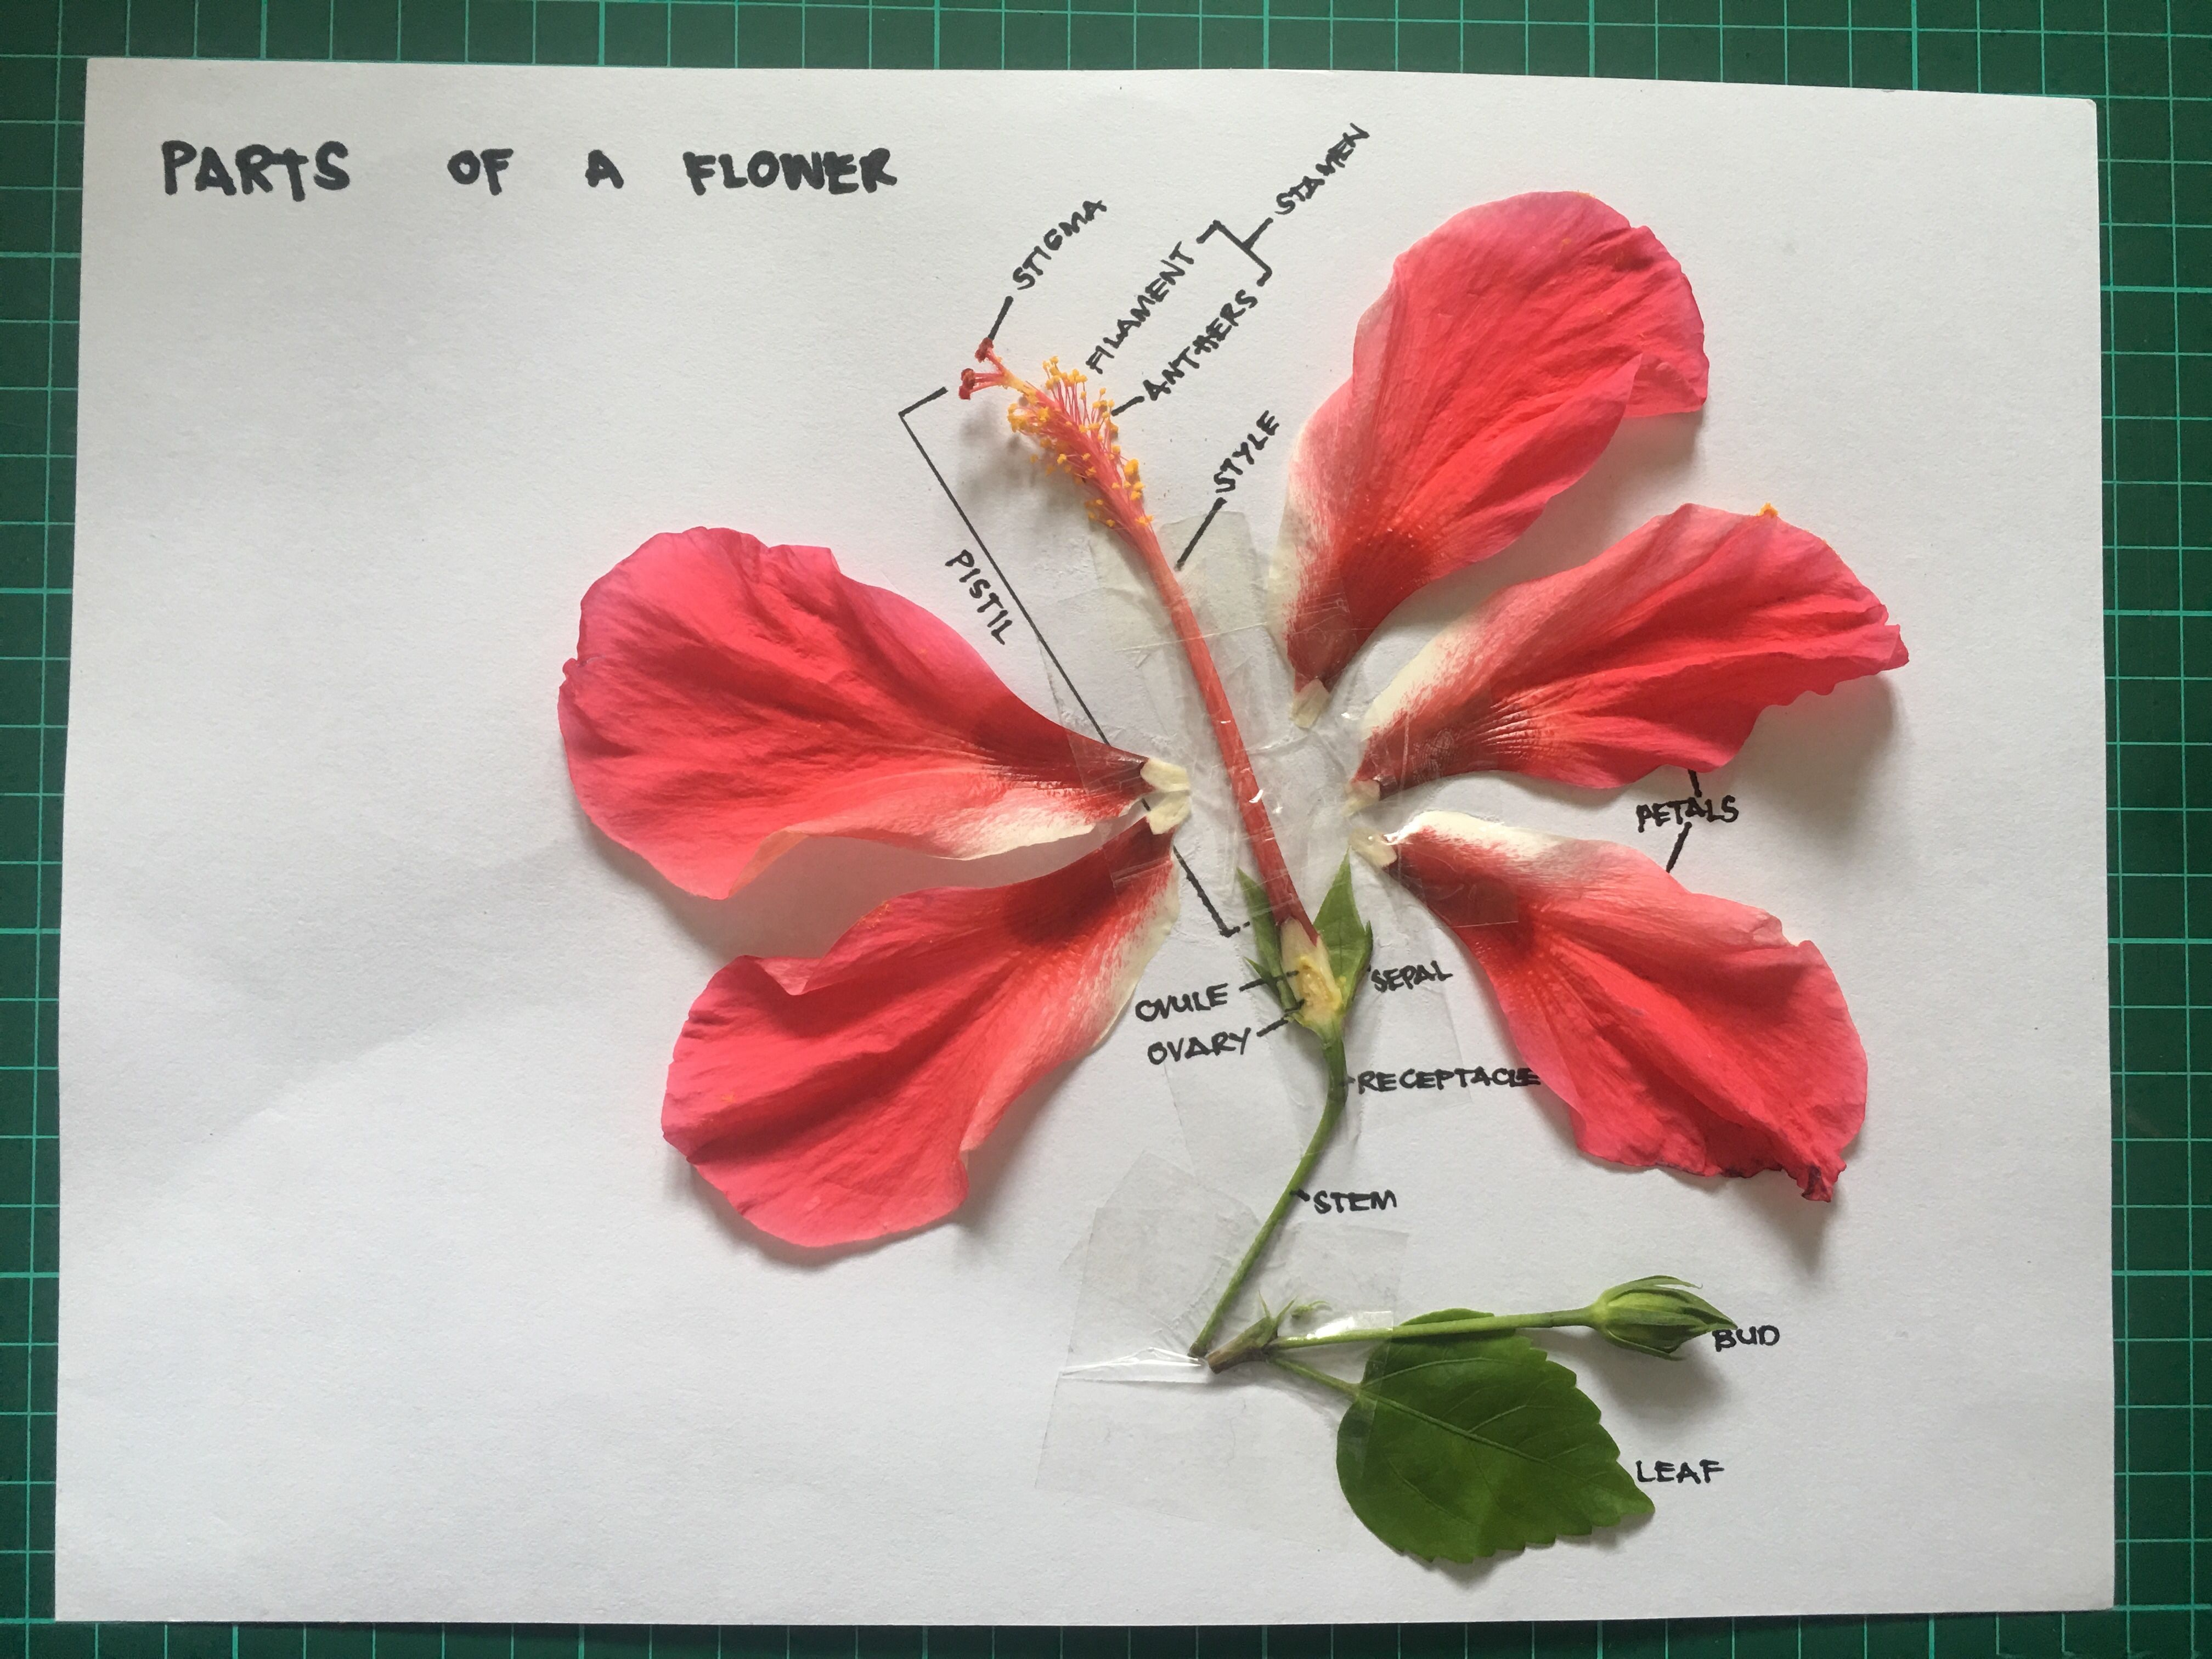 Parts of a flower hibiscus school projects pinterest parts of a flower hibiscus izmirmasajfo